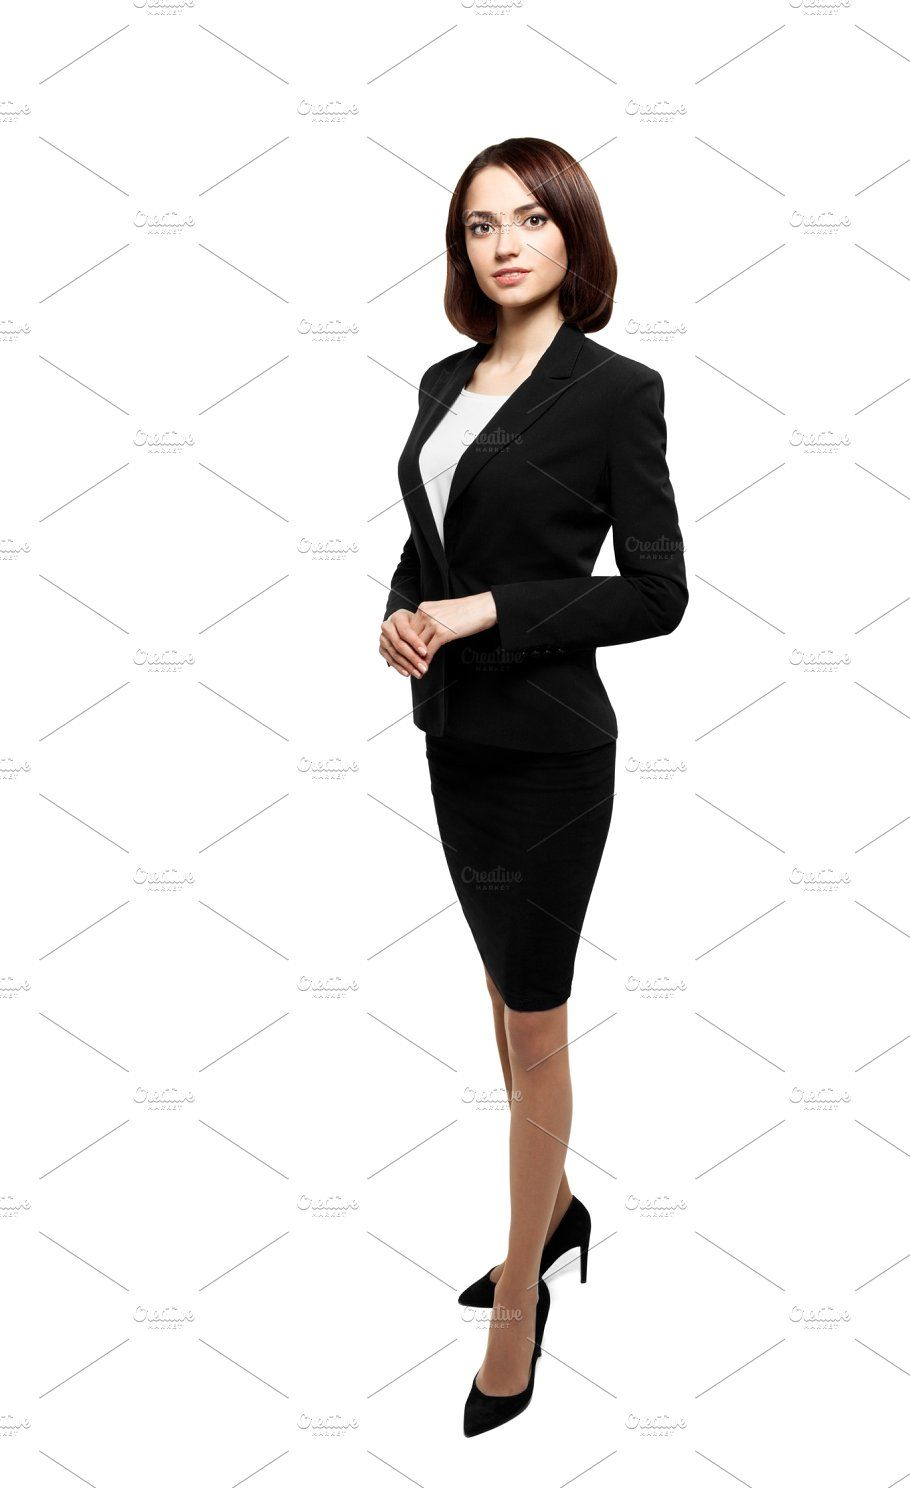 Successful Business Woman Isolated Over White With Images